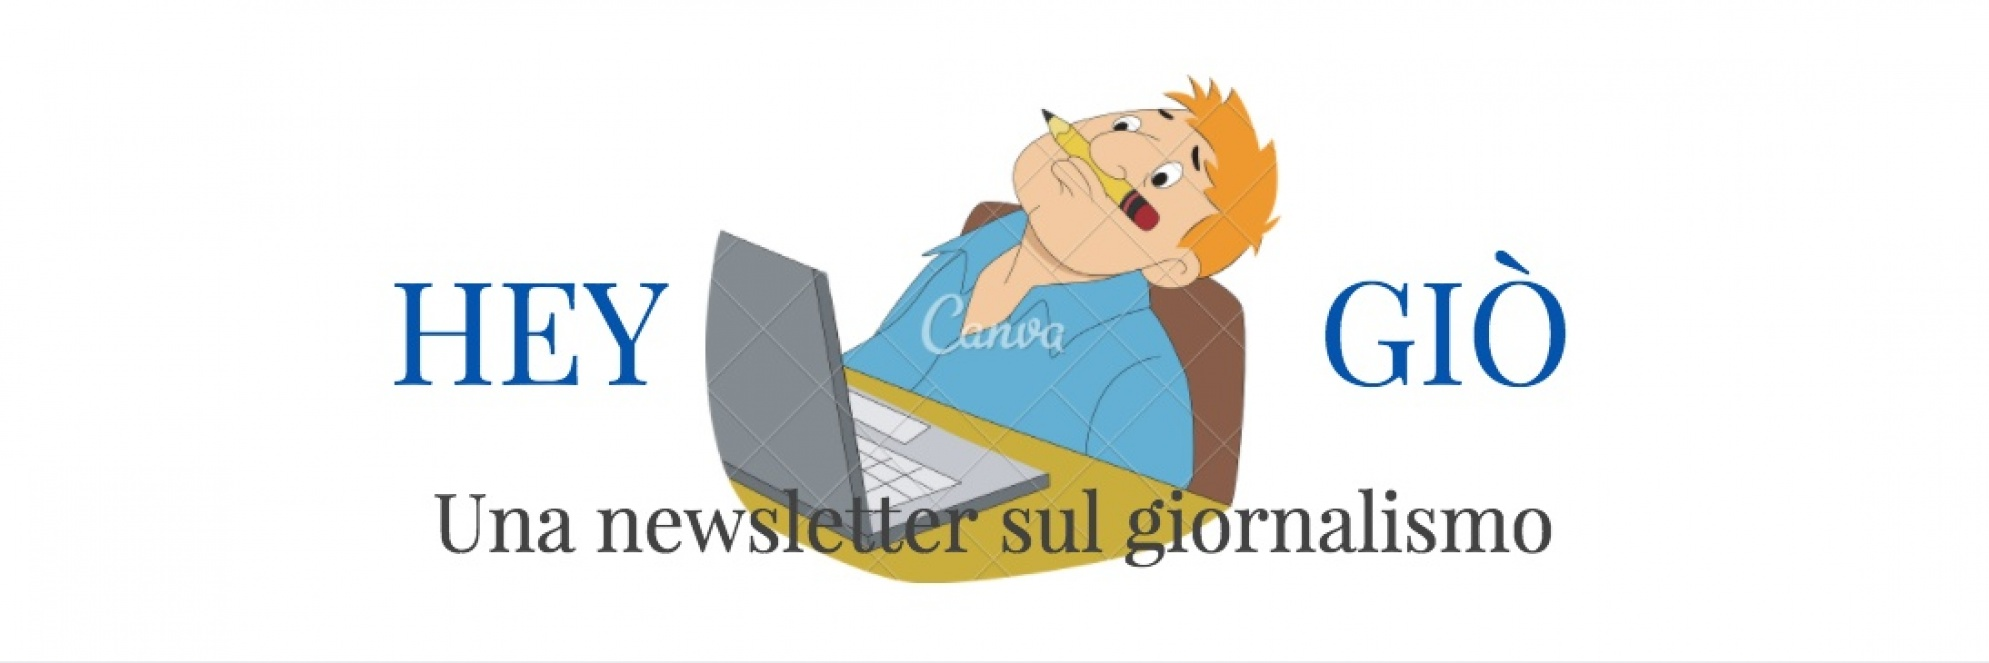 Copy of Heygiò Newsletter